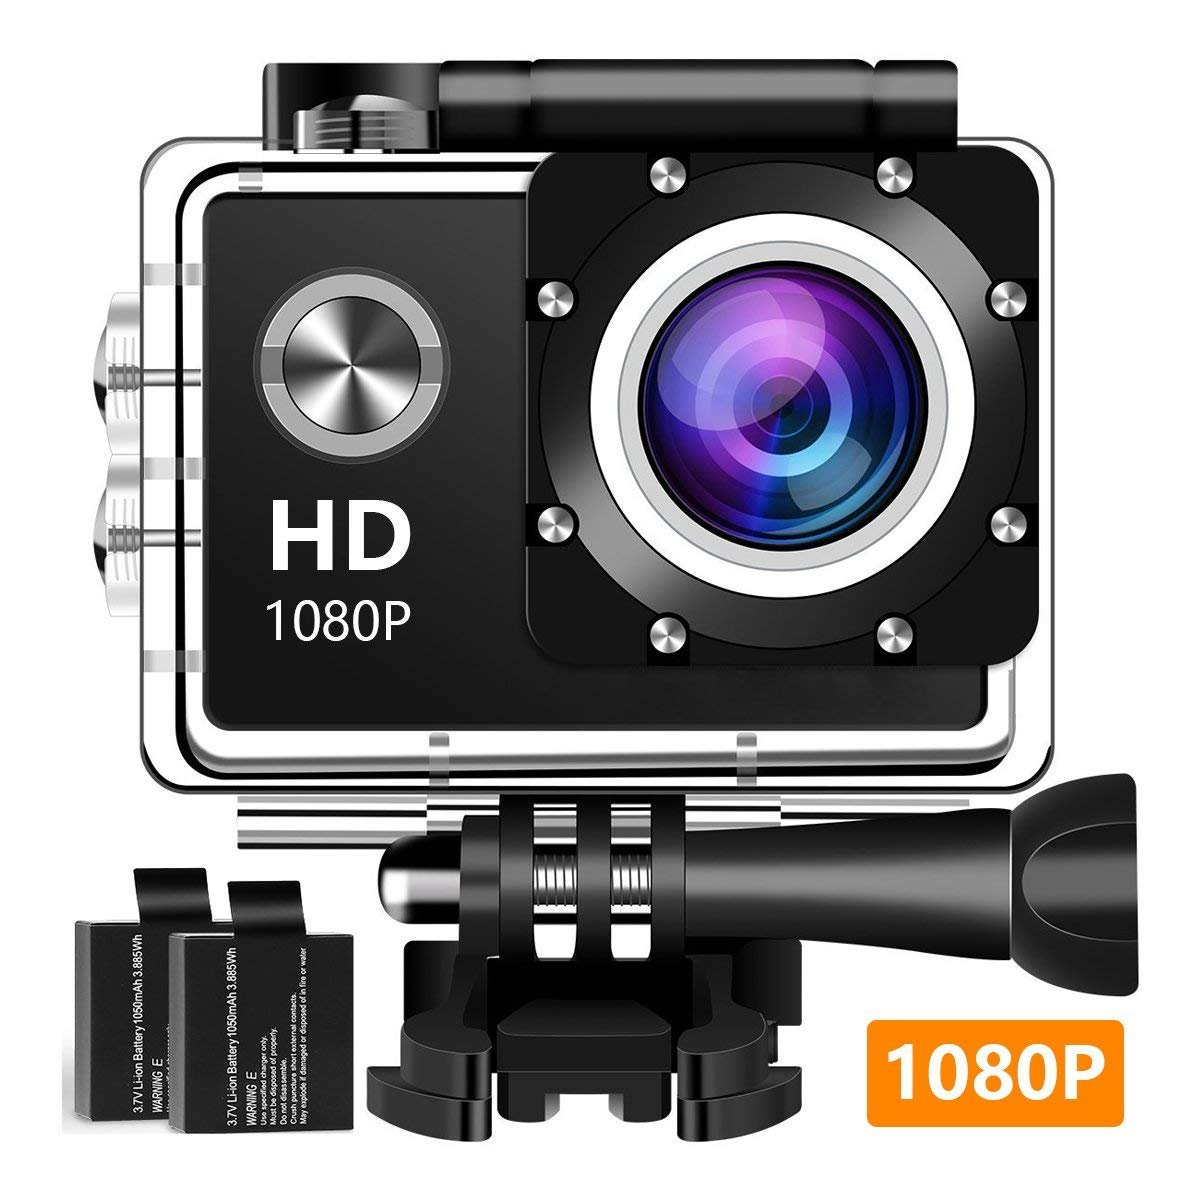 Koawxc Action Camera 16MP 1080P Underwater Photography Cameras 170 Degree Ultra Wide Angle Lens with 2 Pcs Rechargeable Batteries and Mounting Accessories Kits - Black09 by Koawxc